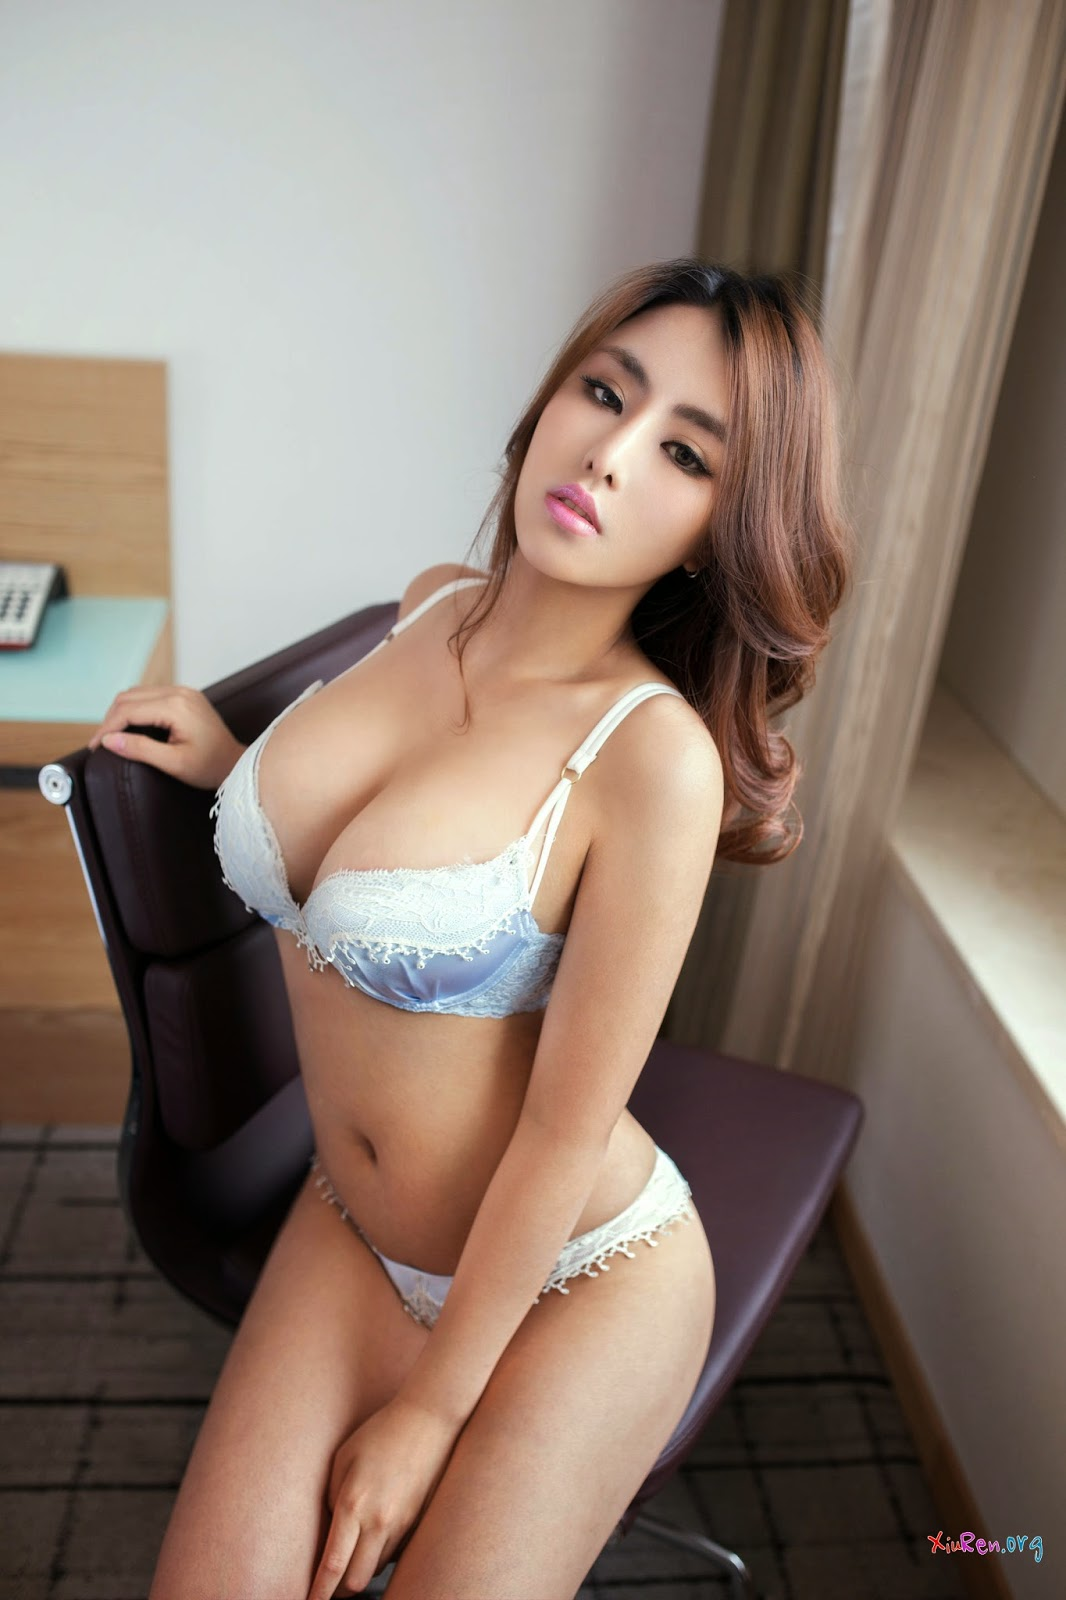 Hot asian porn site